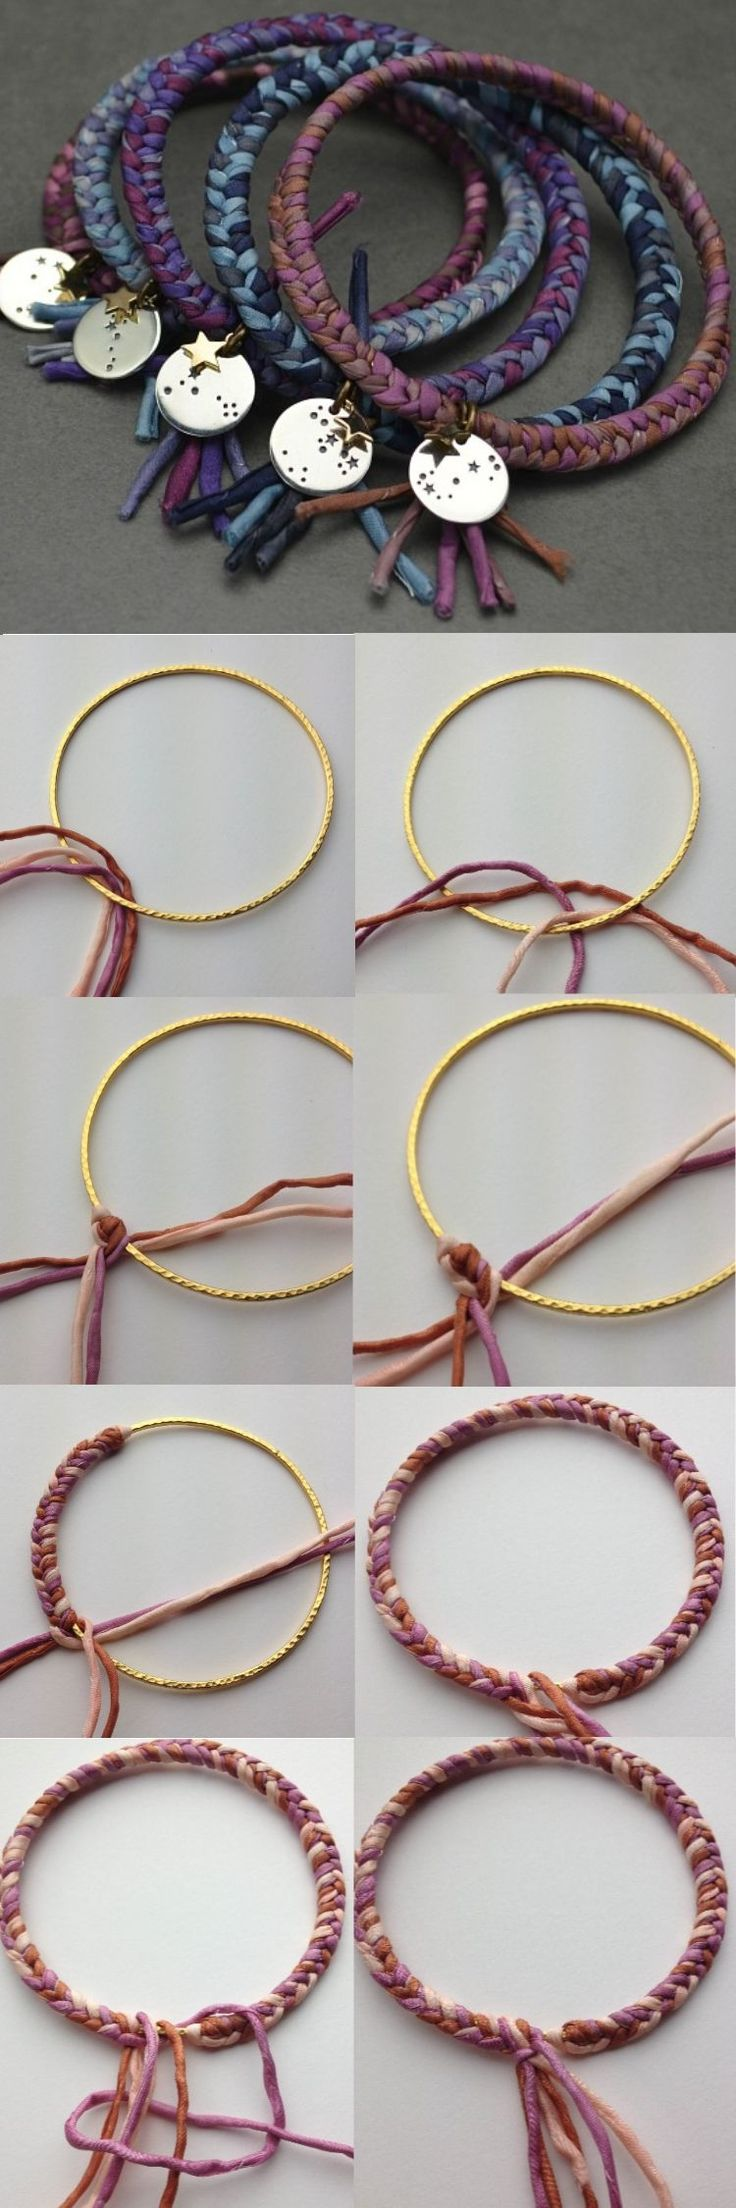 How to DIY Braided Bangles - Add a favorite charm to a colorful braided bangle  and stack them for a boho look.